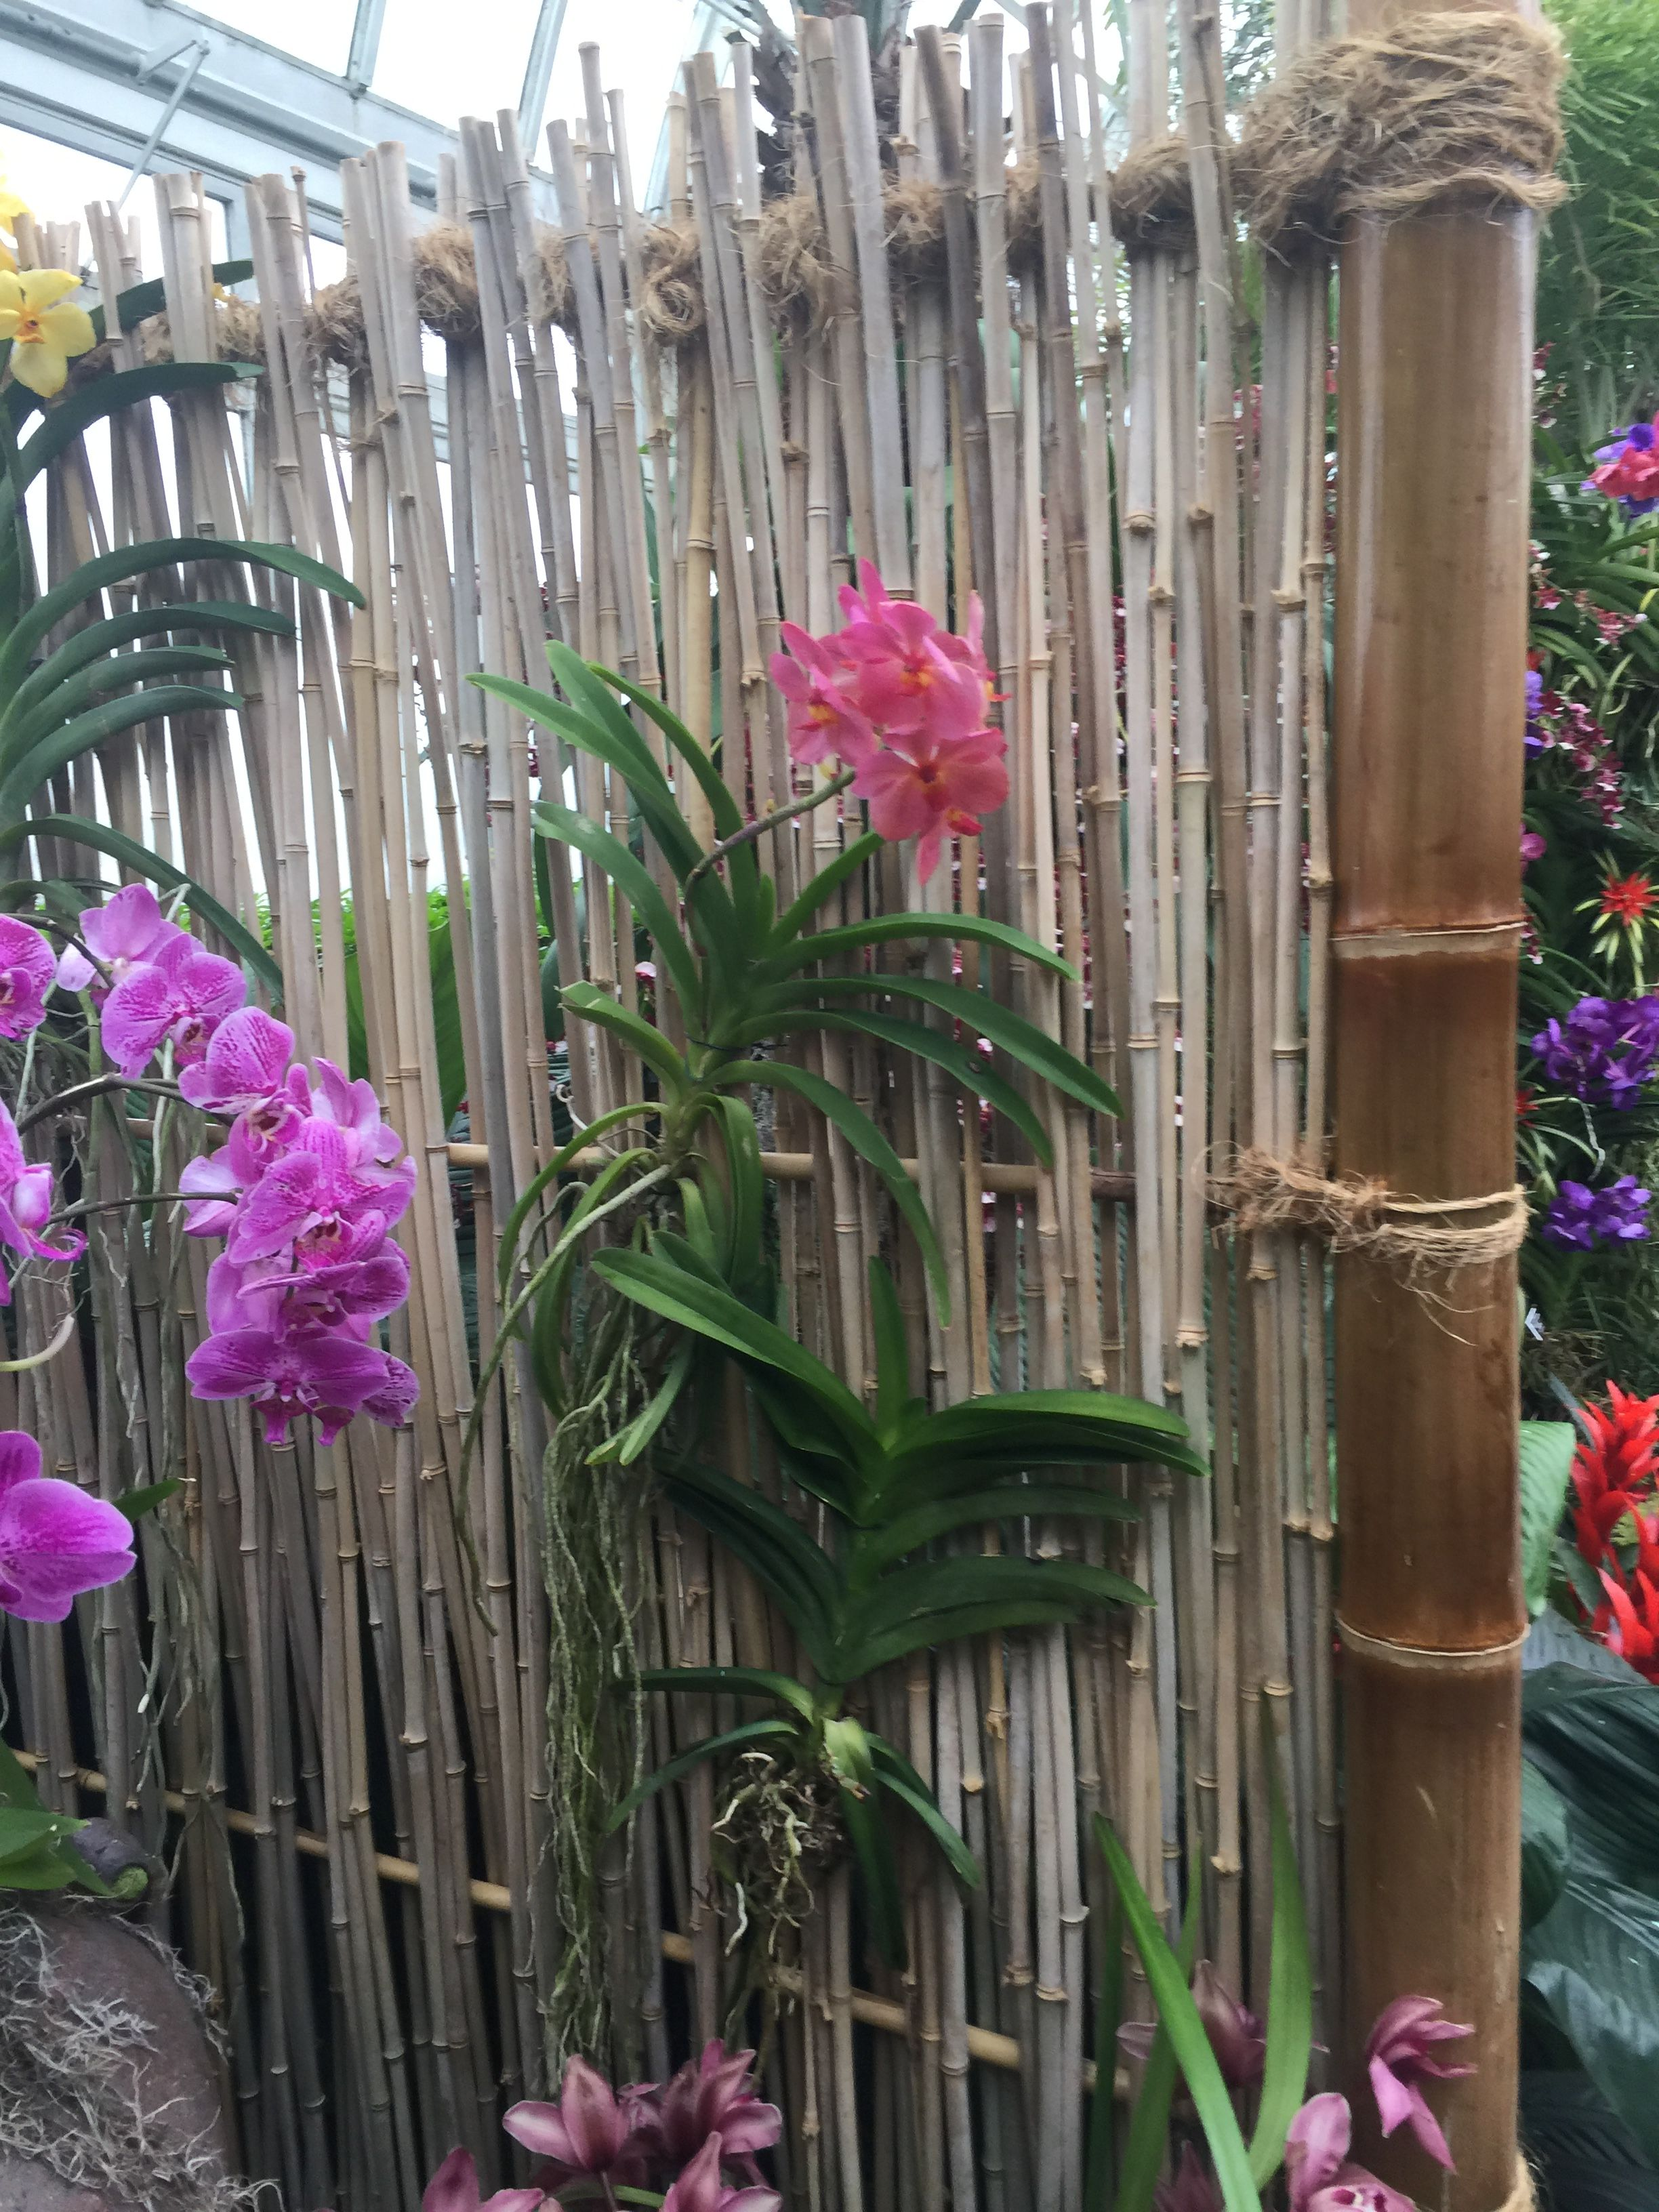 Liked The Bamboo Idea As A Screen To Hang Orchids Orchids Vanda Orchids Orchid Flower